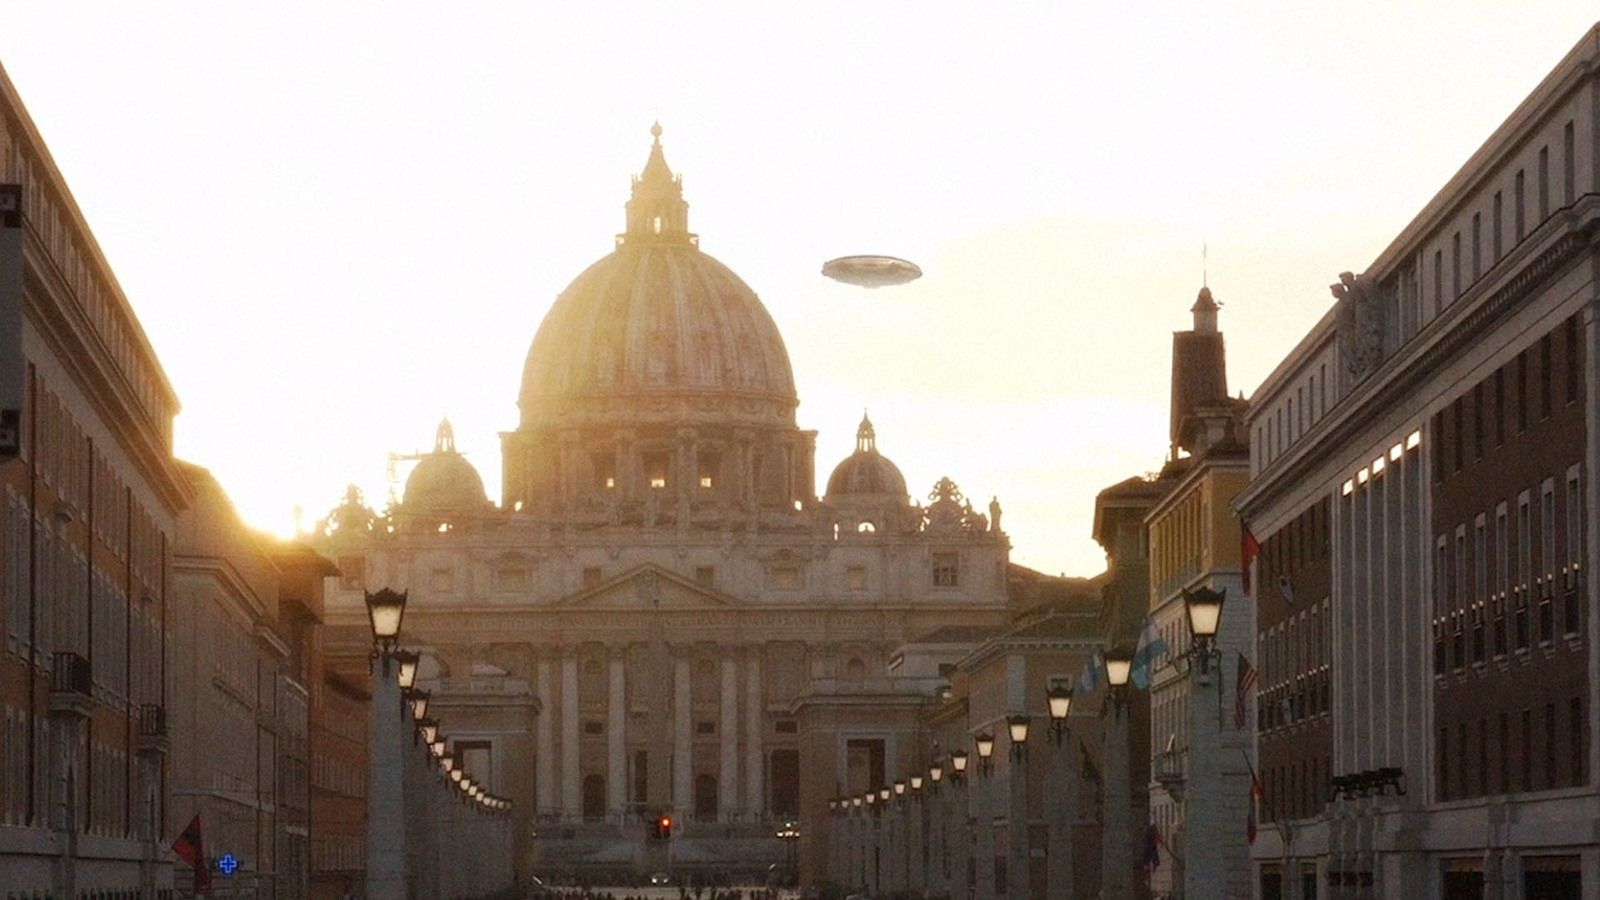 👽 UFO over St Peter's Basilica in Vatican